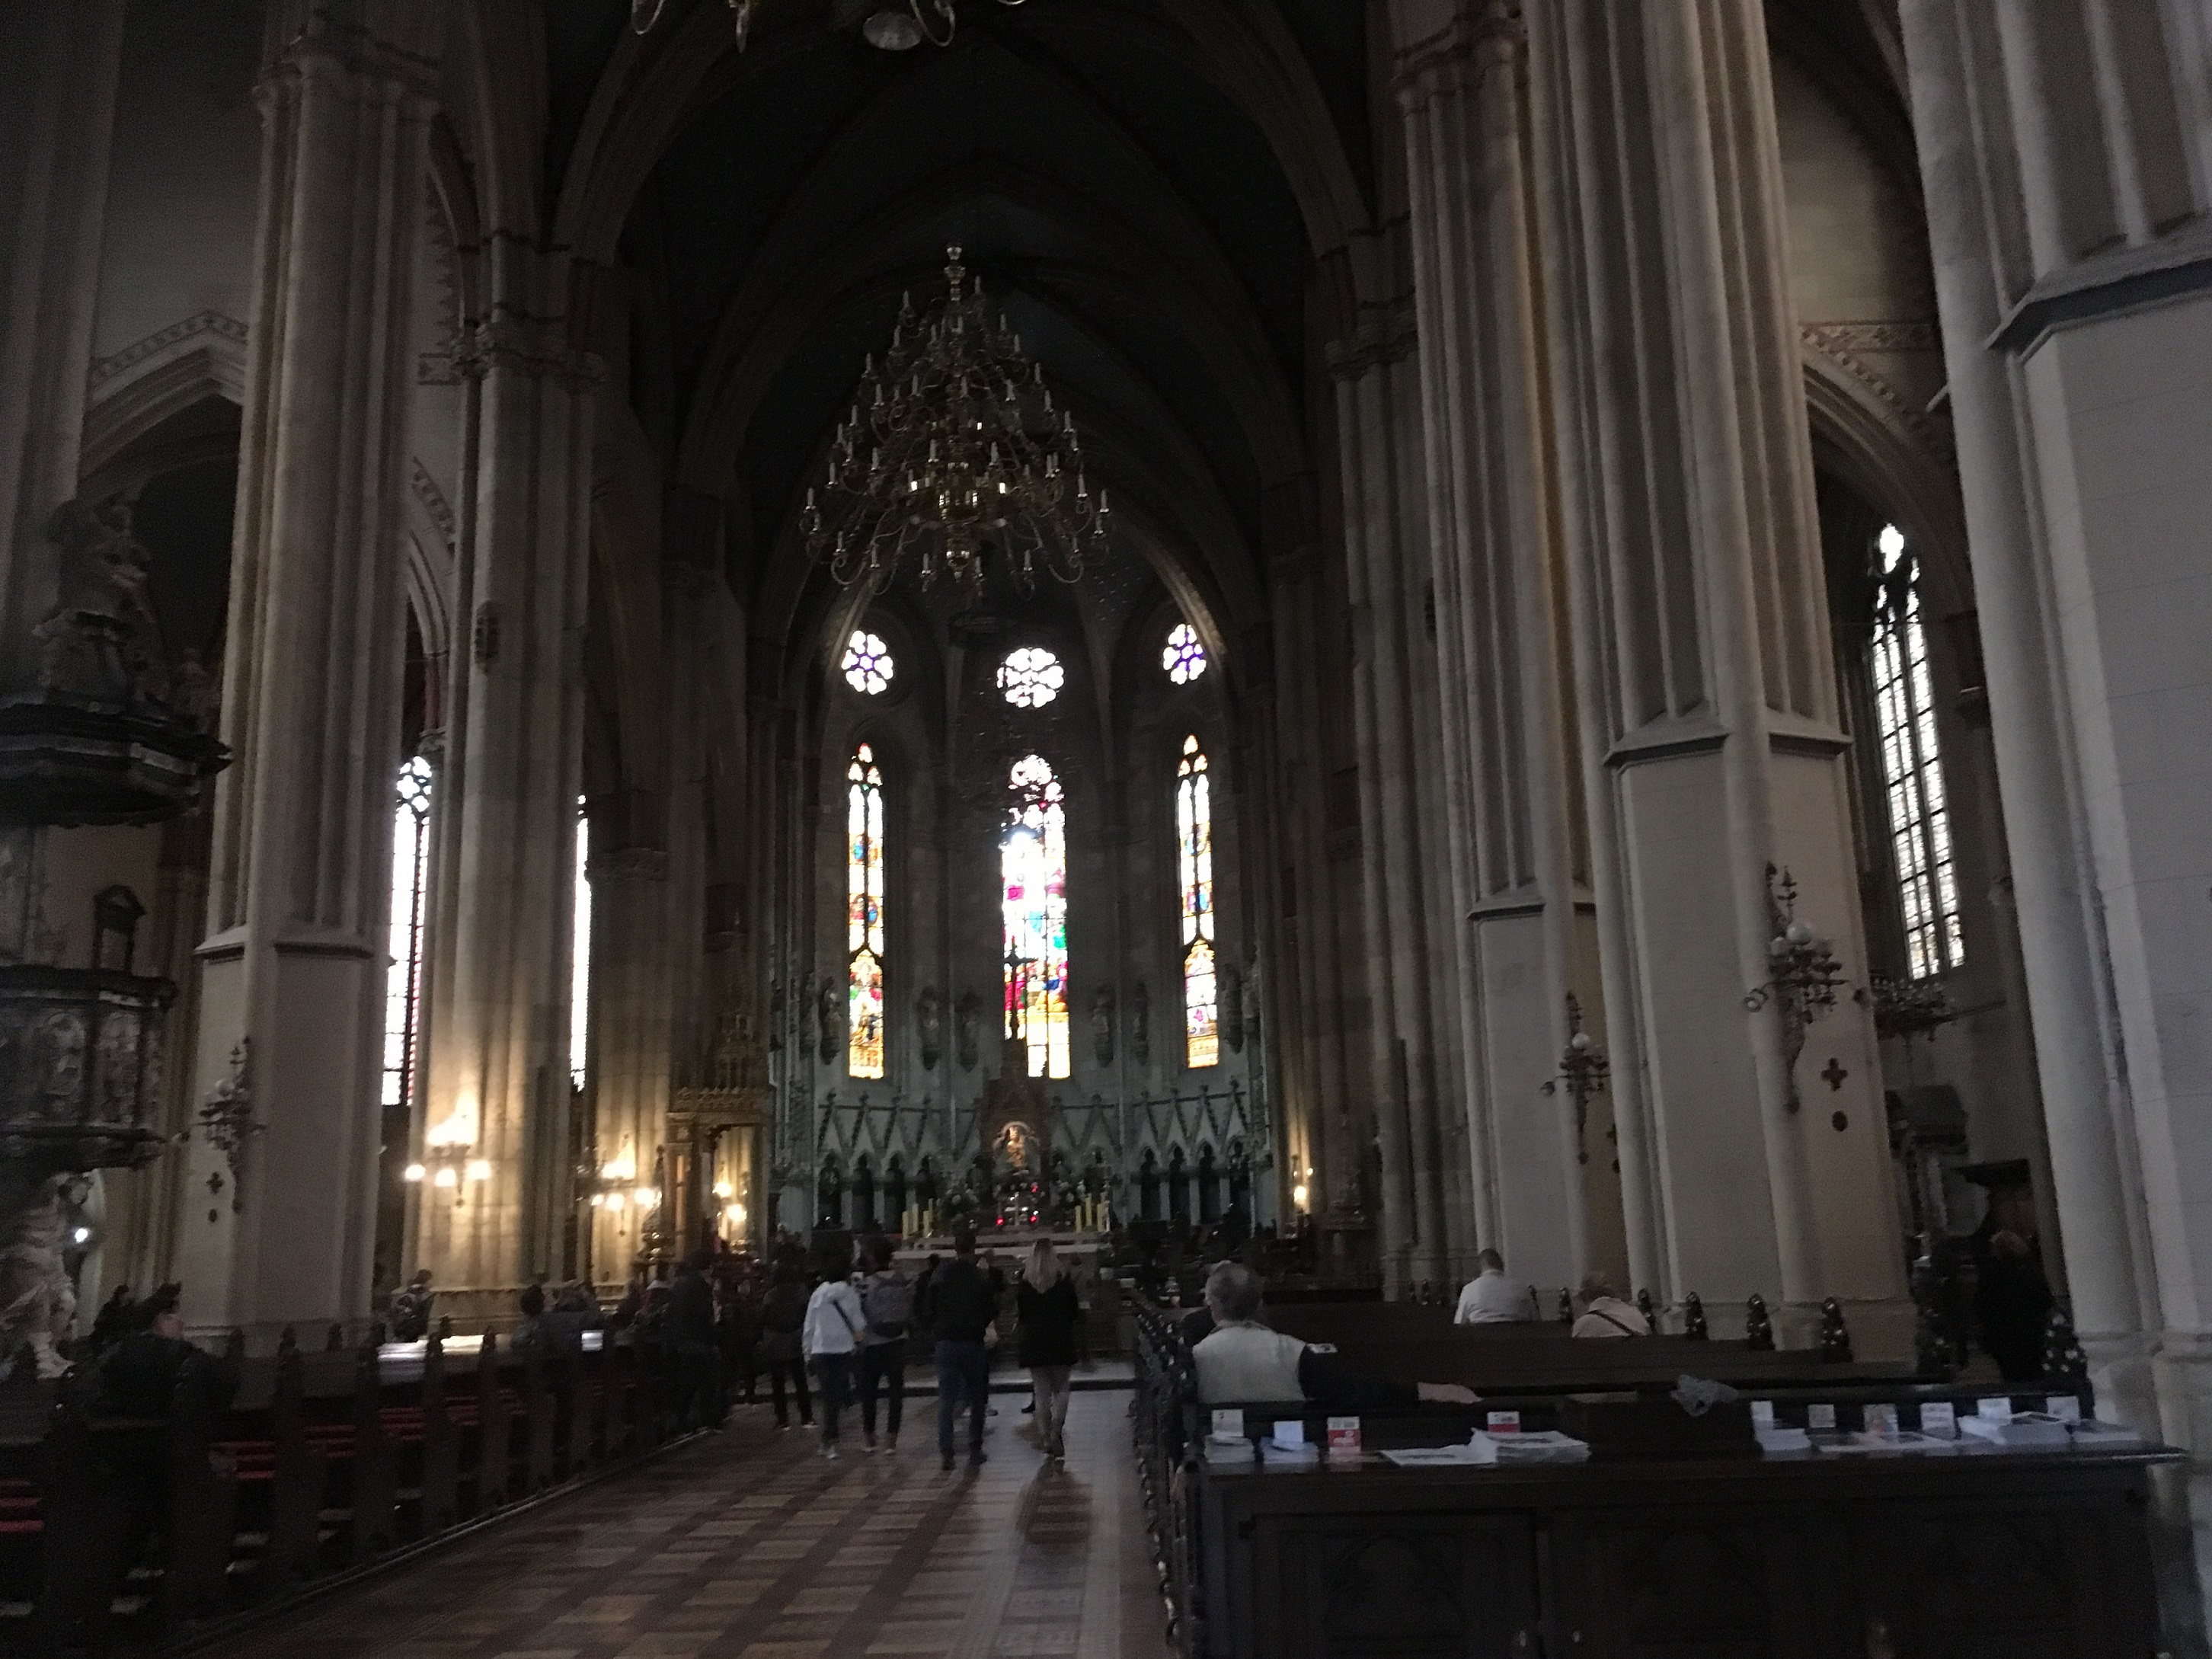 zagreb cathedral inside